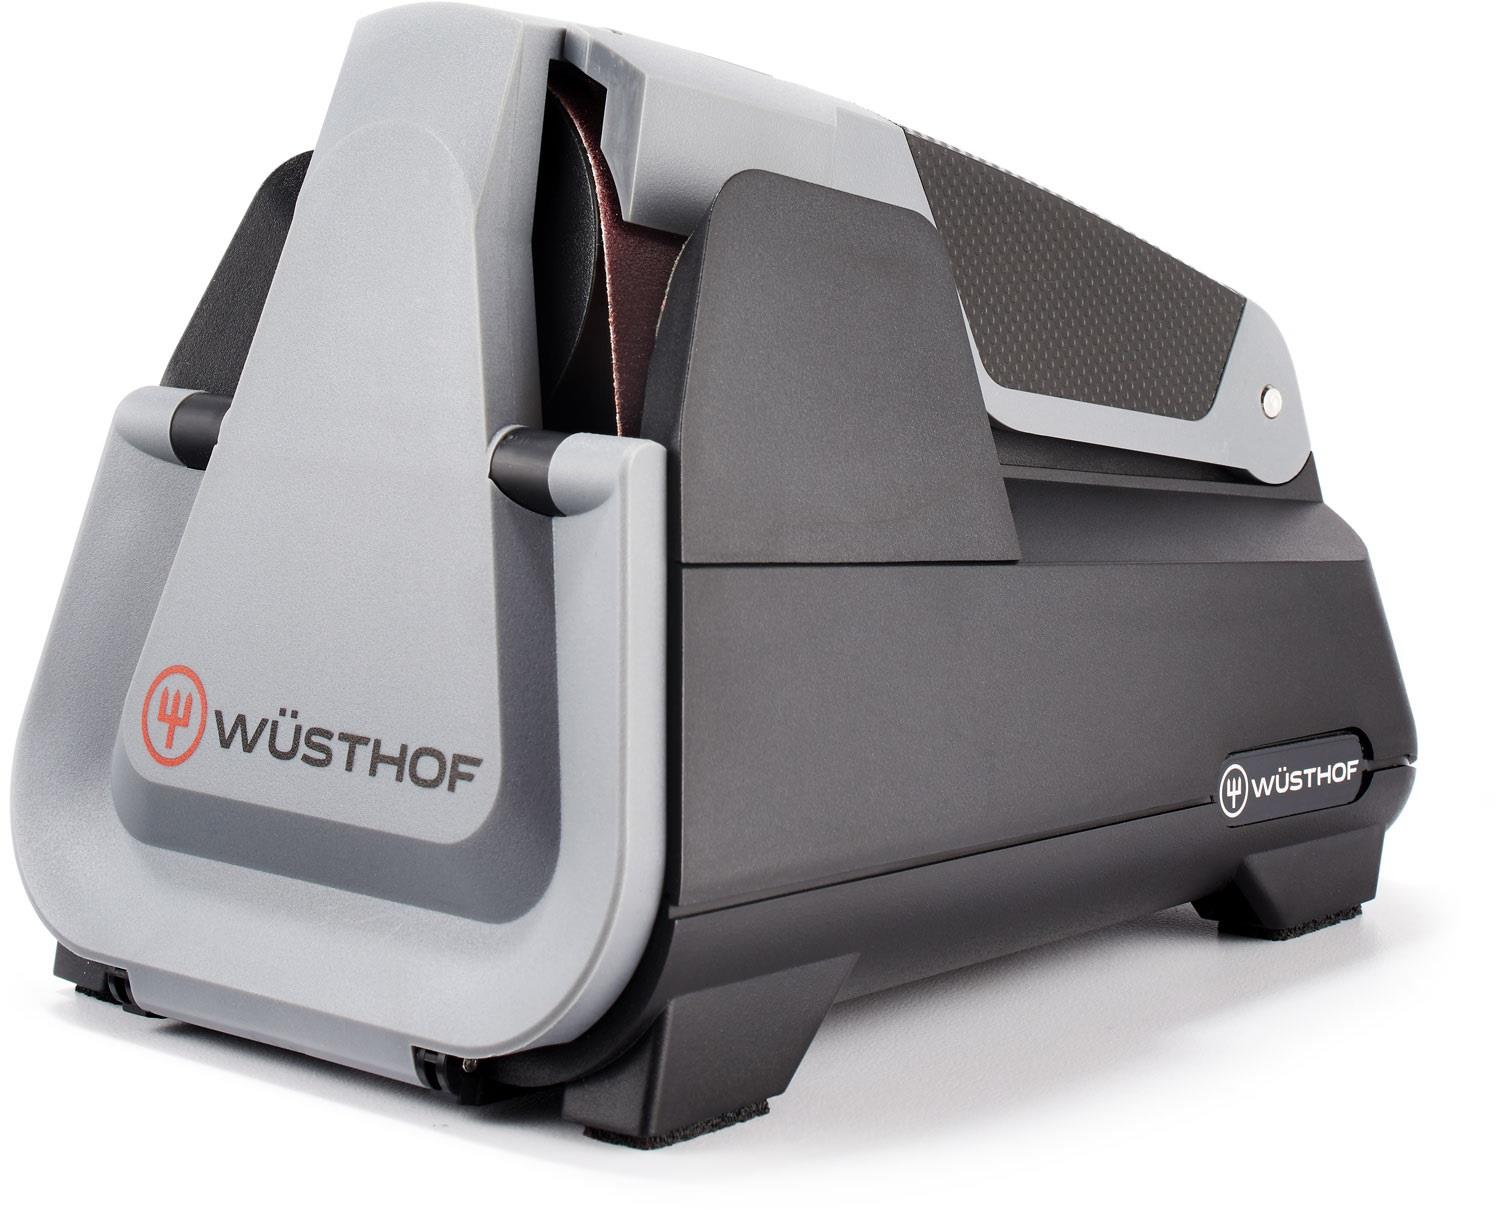 Wusthof Easy Electric Knife Sharpener